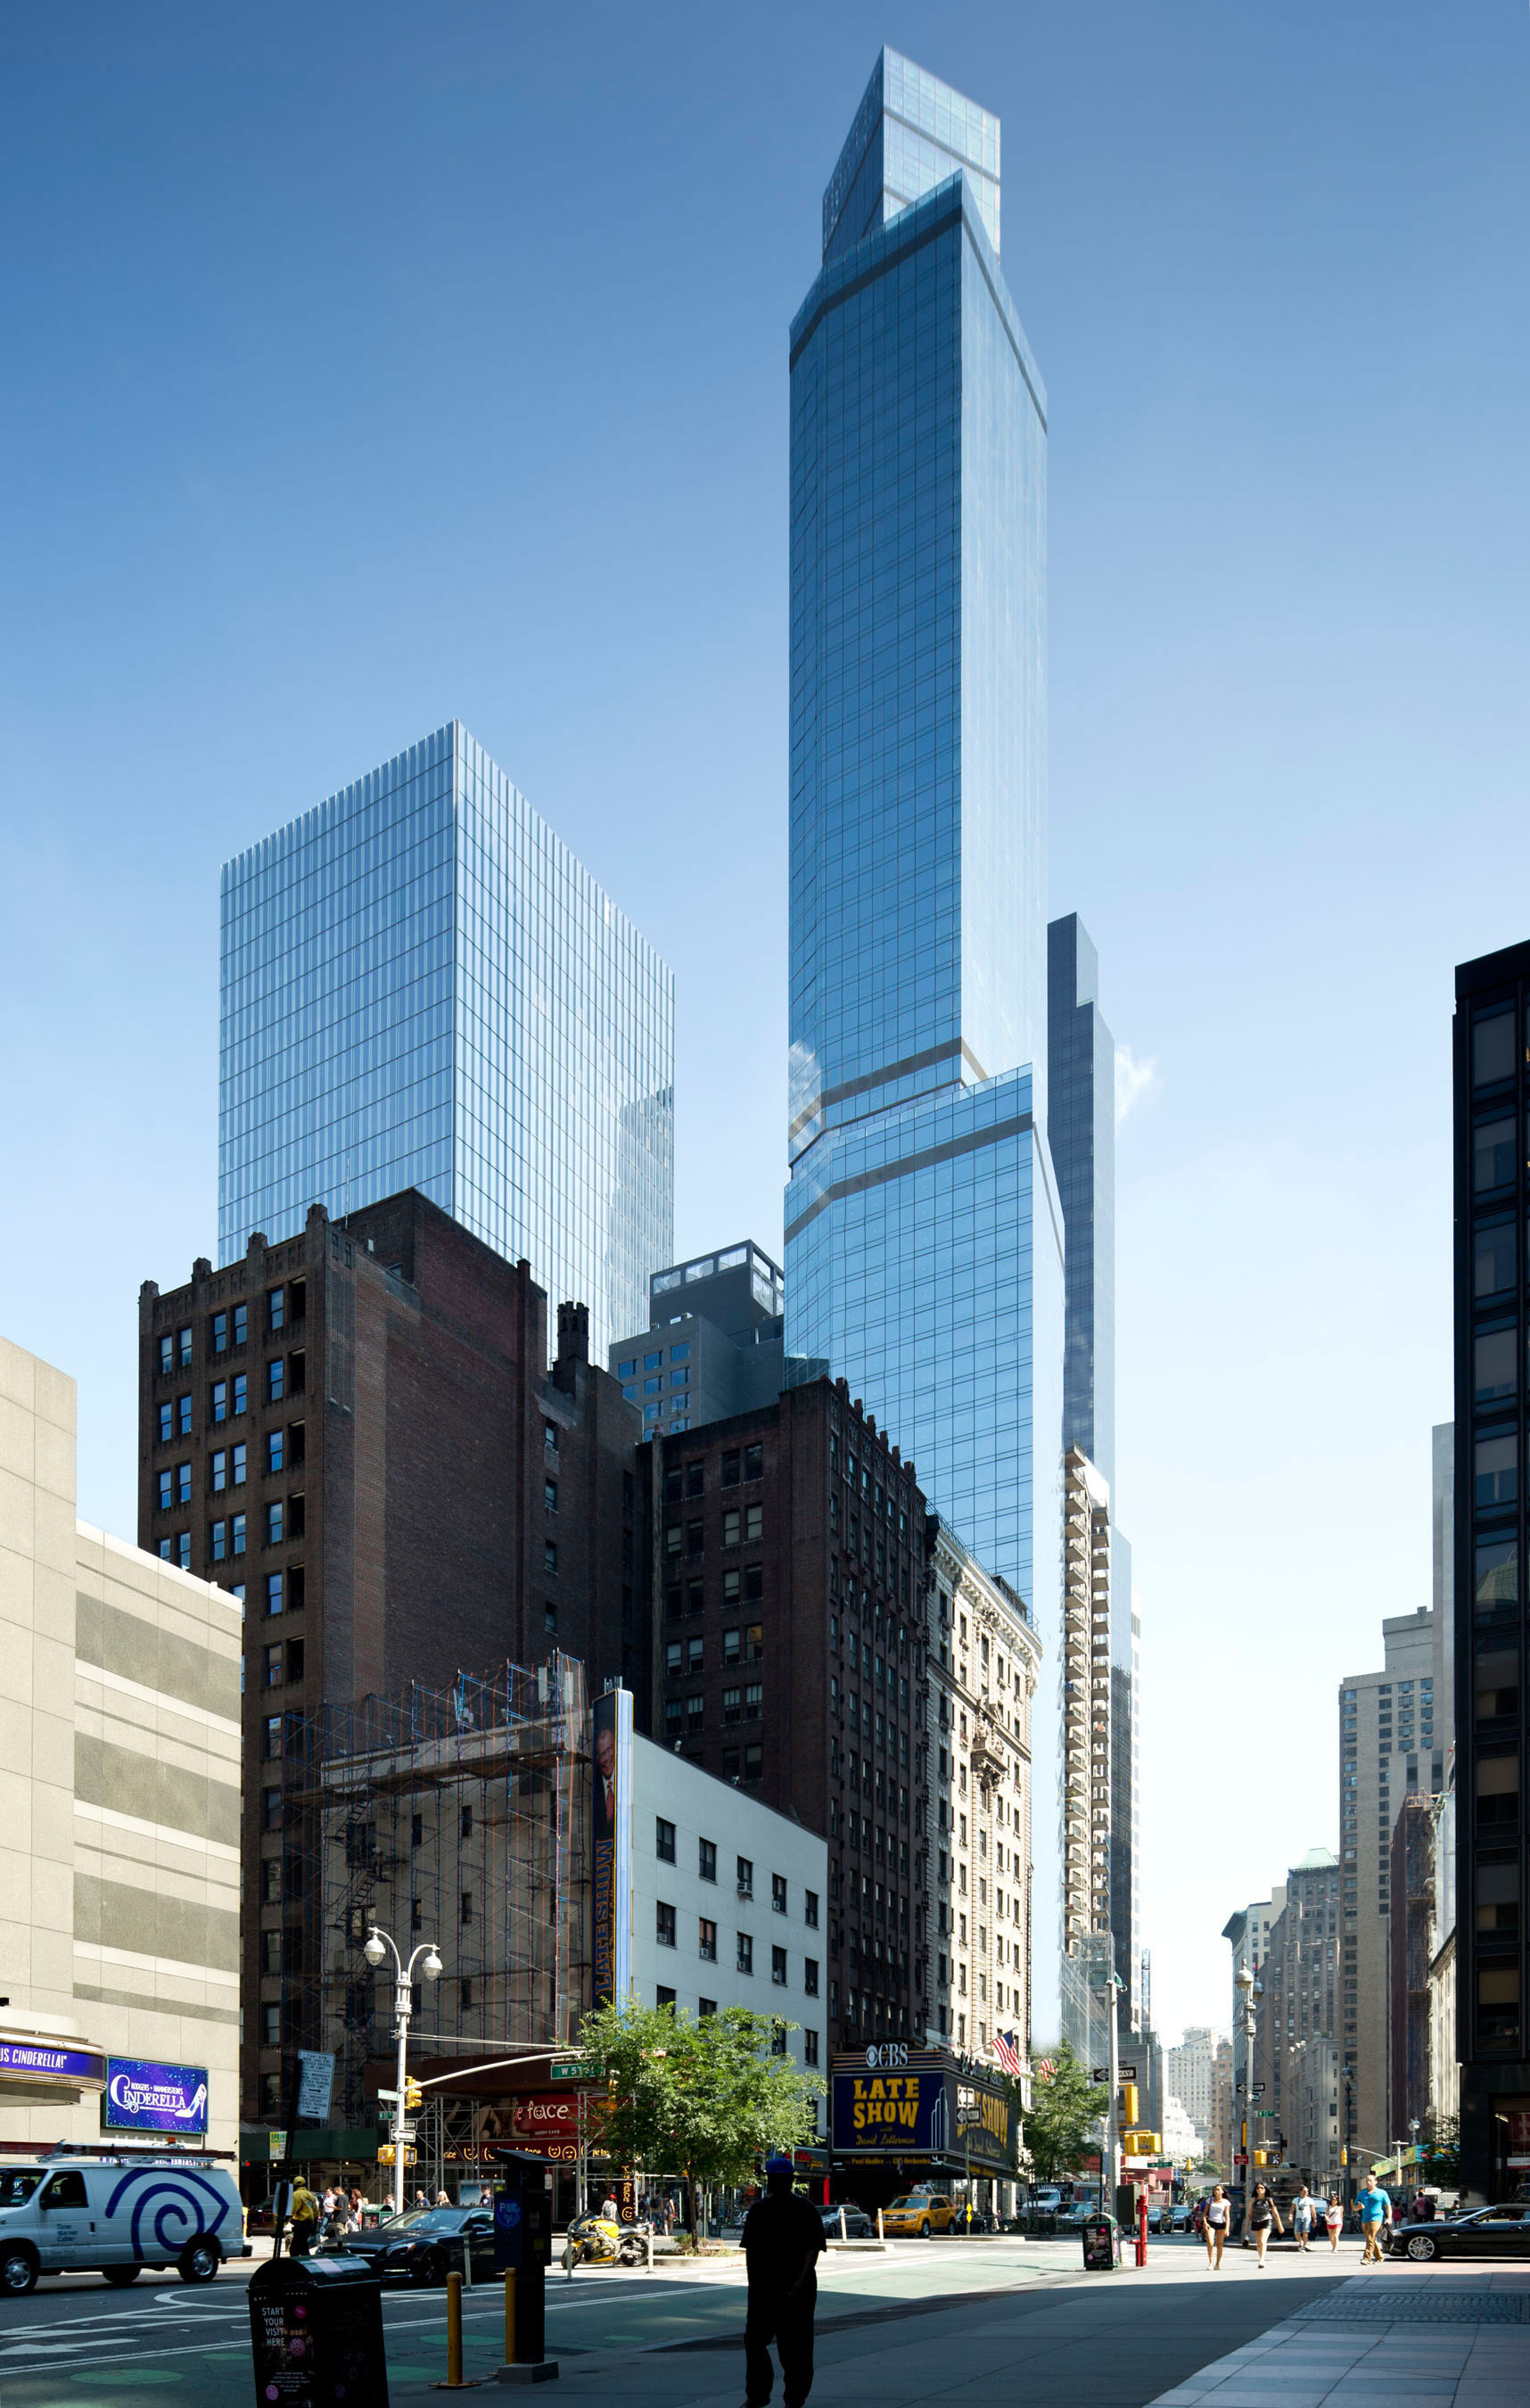 Marriott International, Inc. and G Holdings announce the opening of an iconic addition to the New York City skyline, a combined 378-room Courtyard hotel and 261-suite Residence Inn hotel in Midtown Manhattan.  (PRNewsFoto/Marriott International, Inc.)